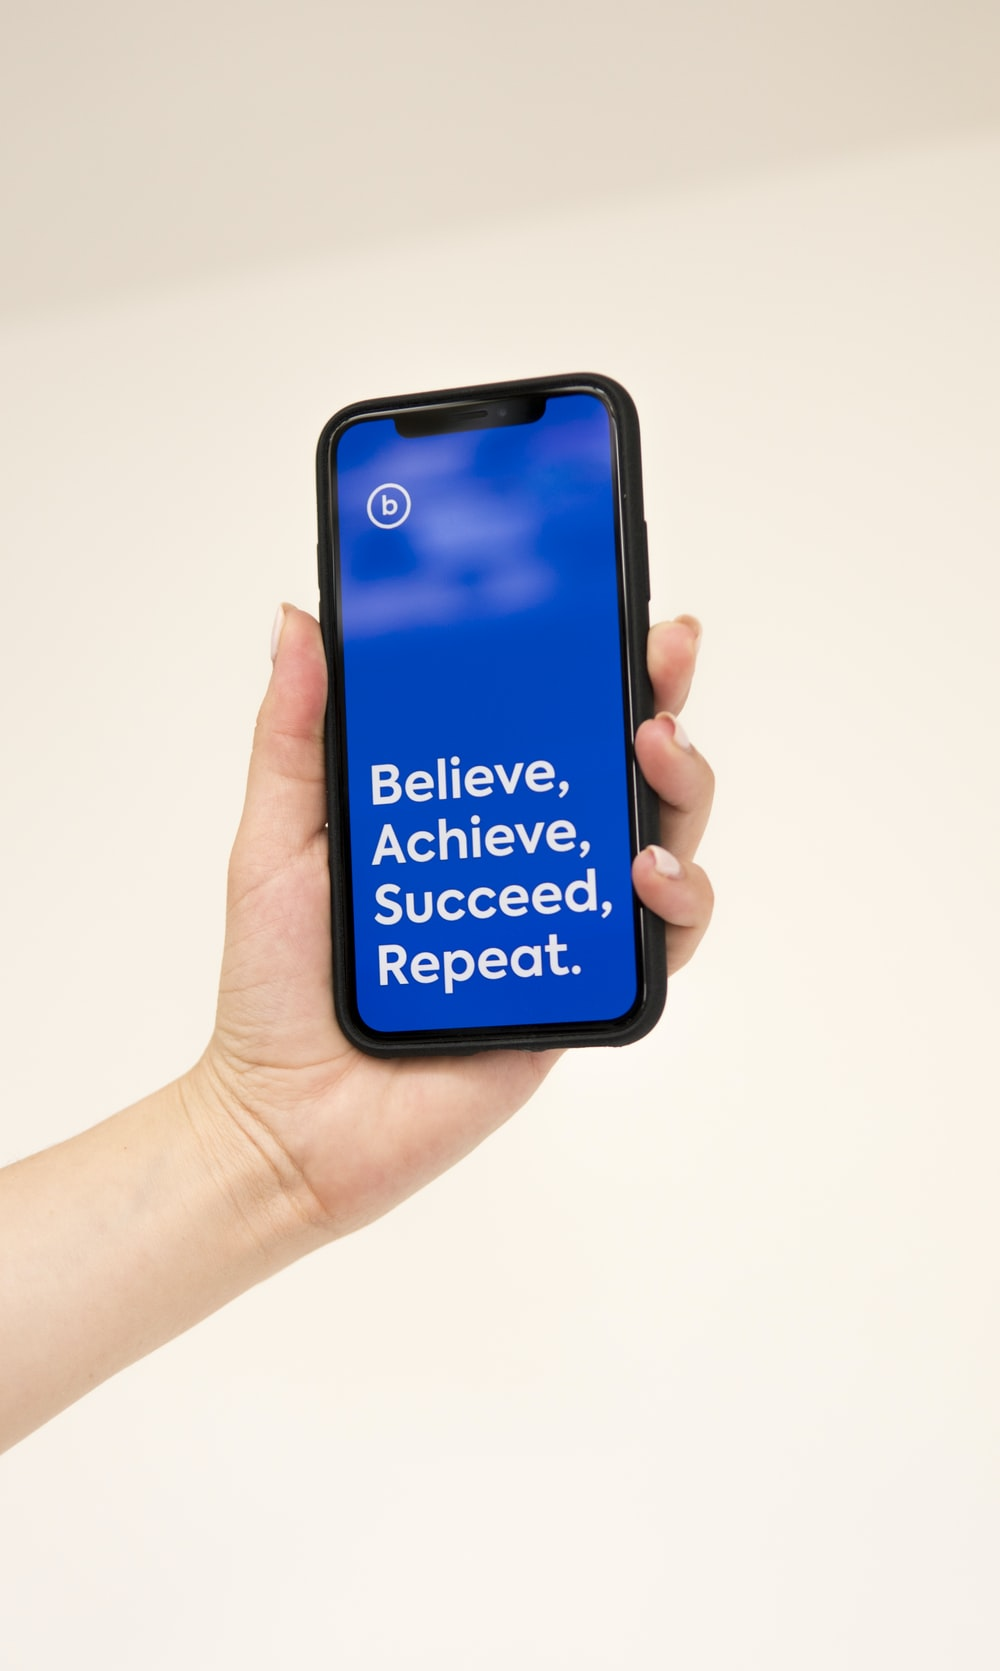 believe, achieve, succeed, and repeat quote